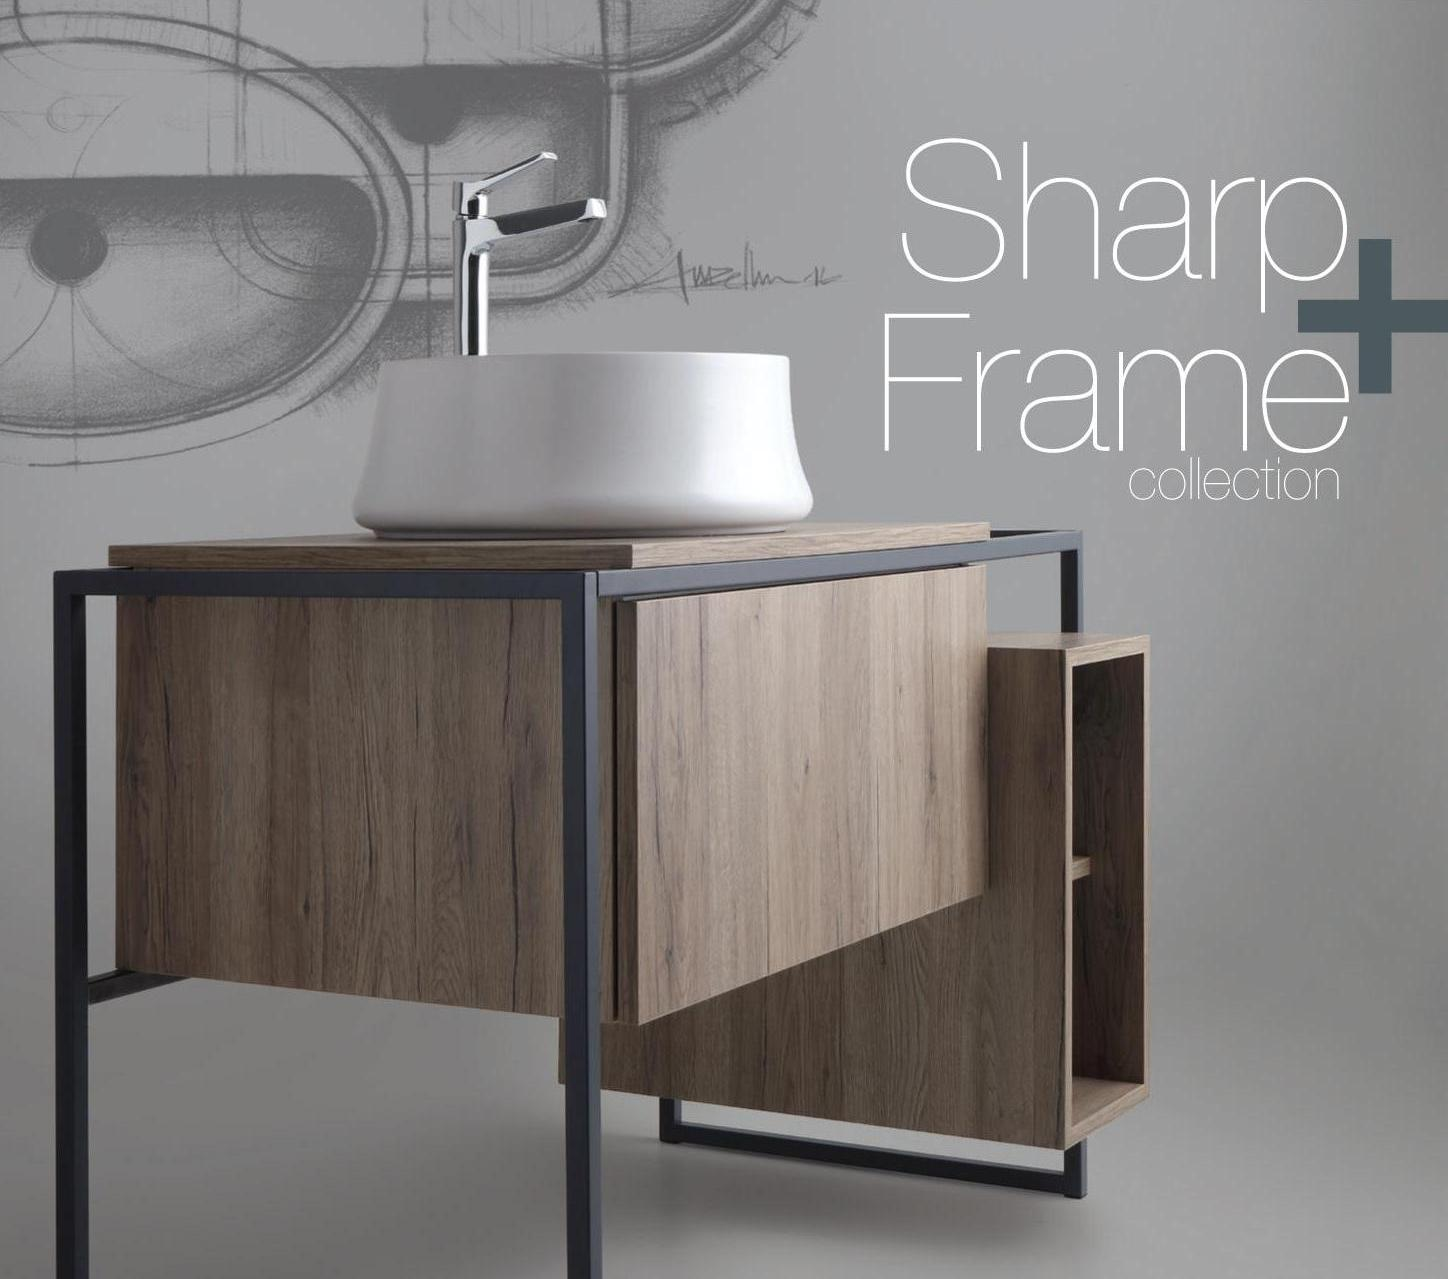 SIMAS FRAME SHARP